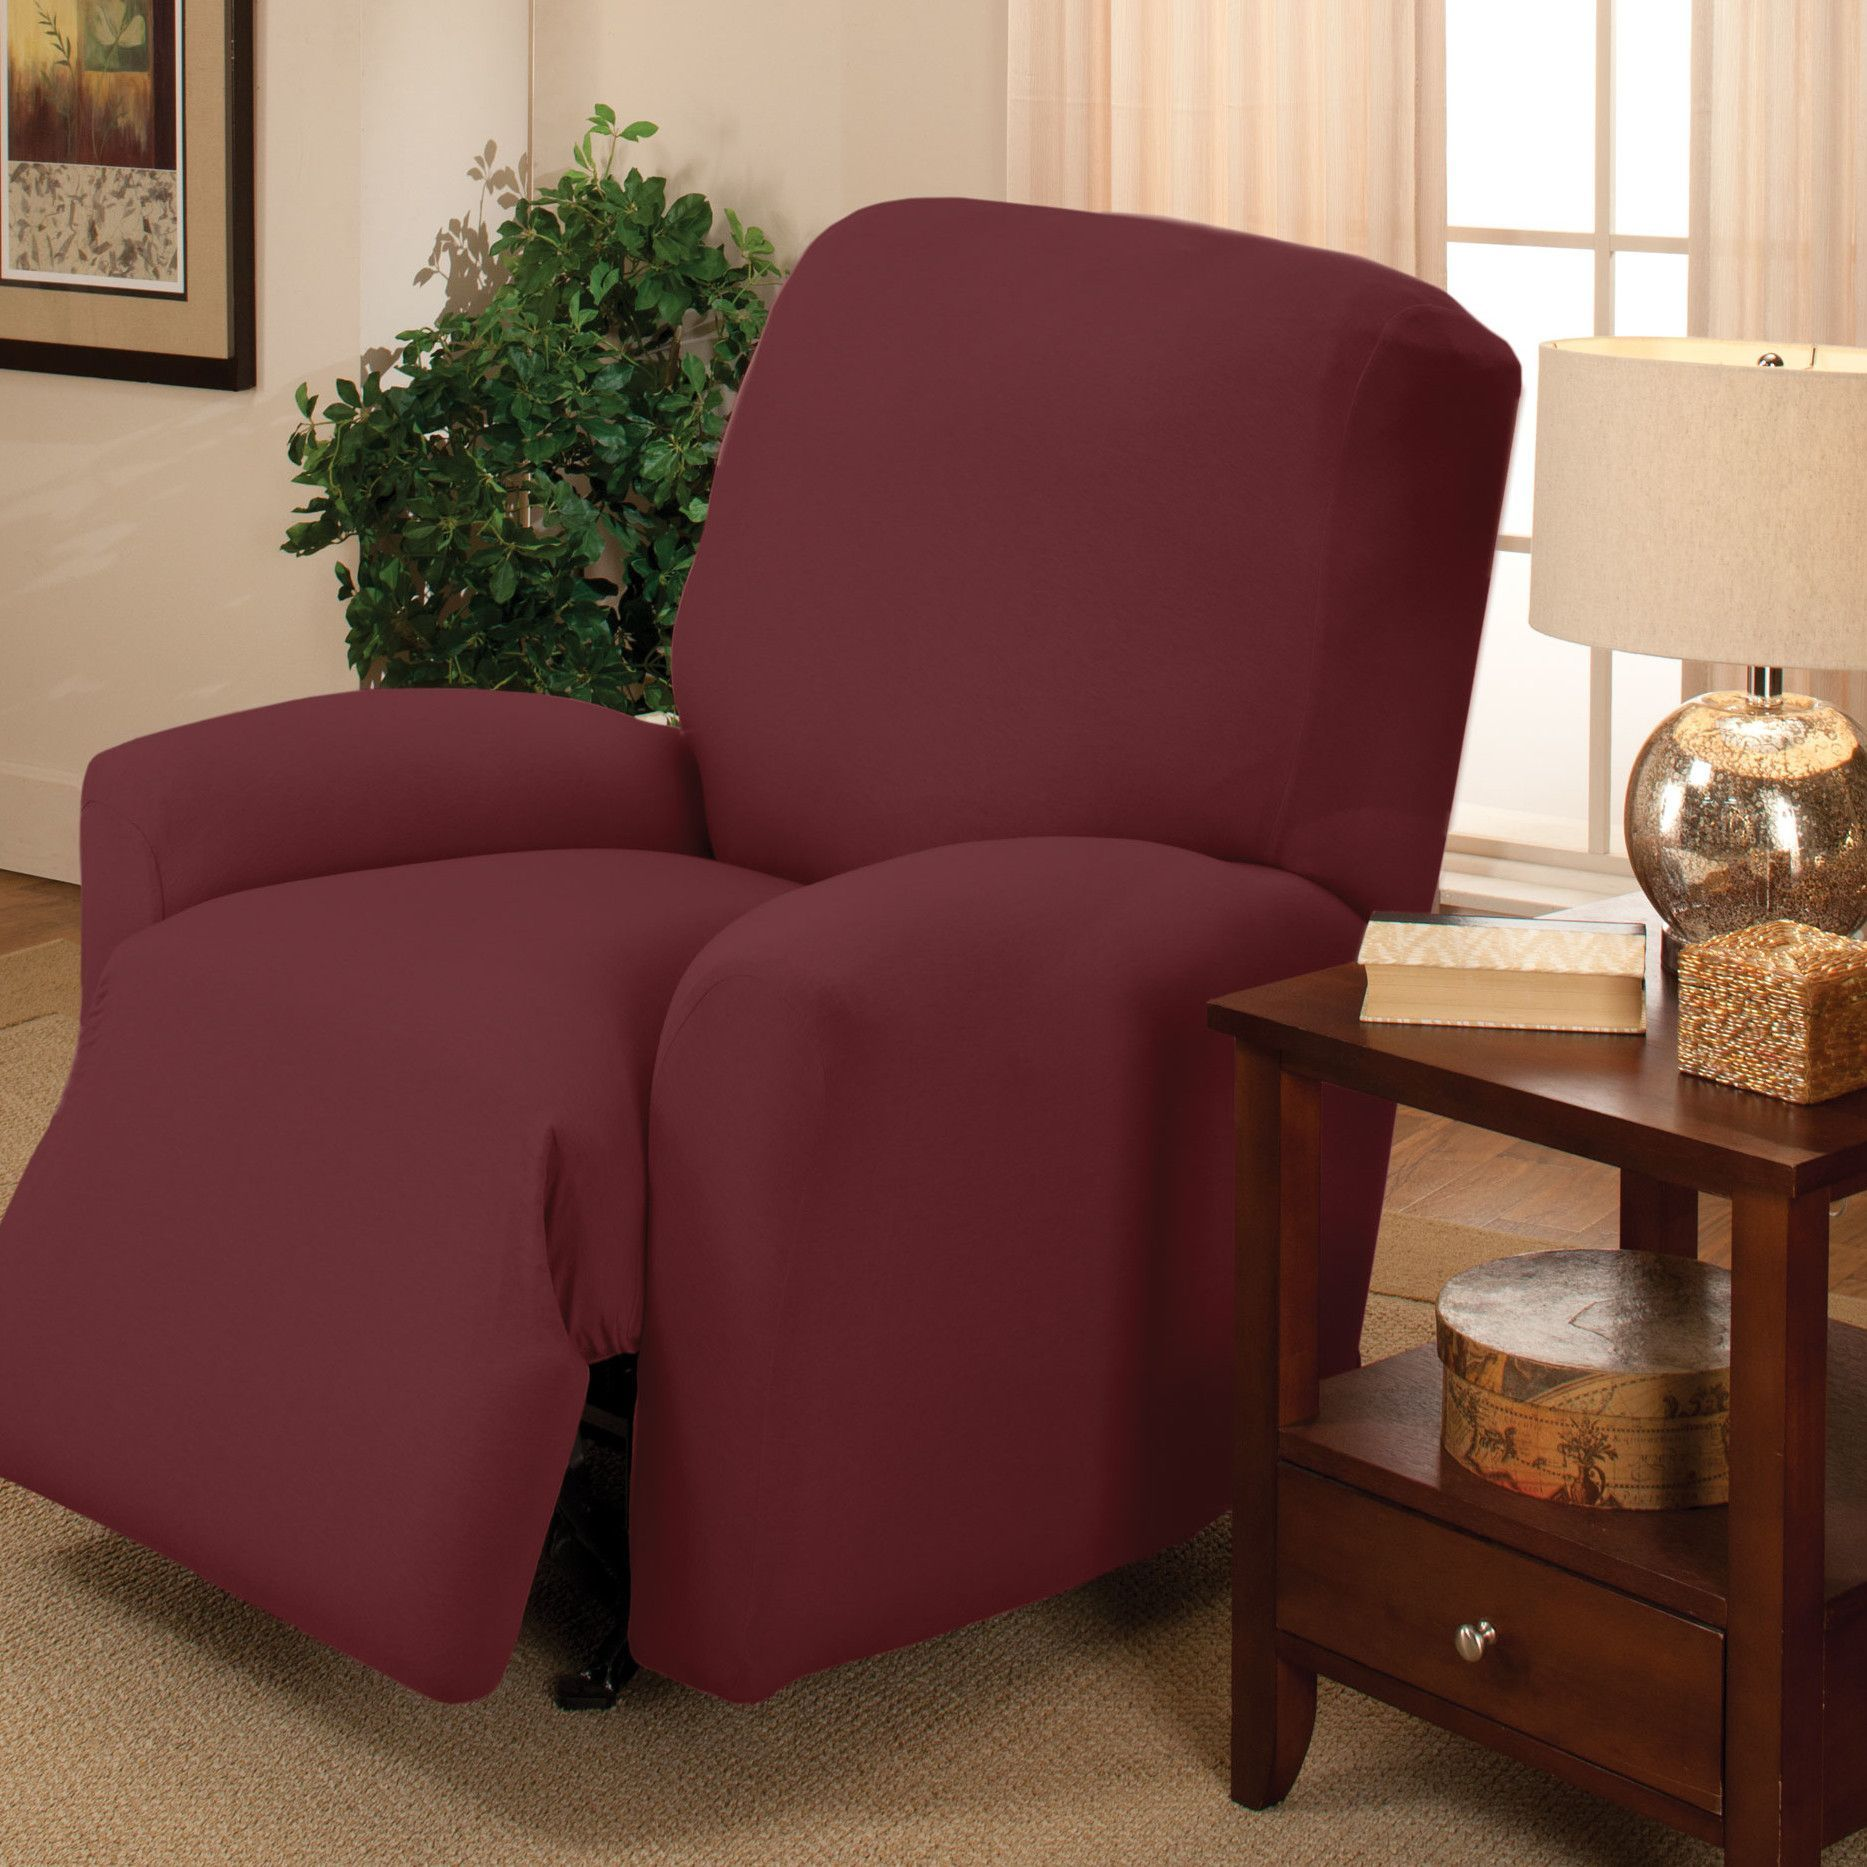 with design for furniture wingback comfortable recliners sunroom chairs room slipcovers wing living slipcover classic sure windows recliner fit